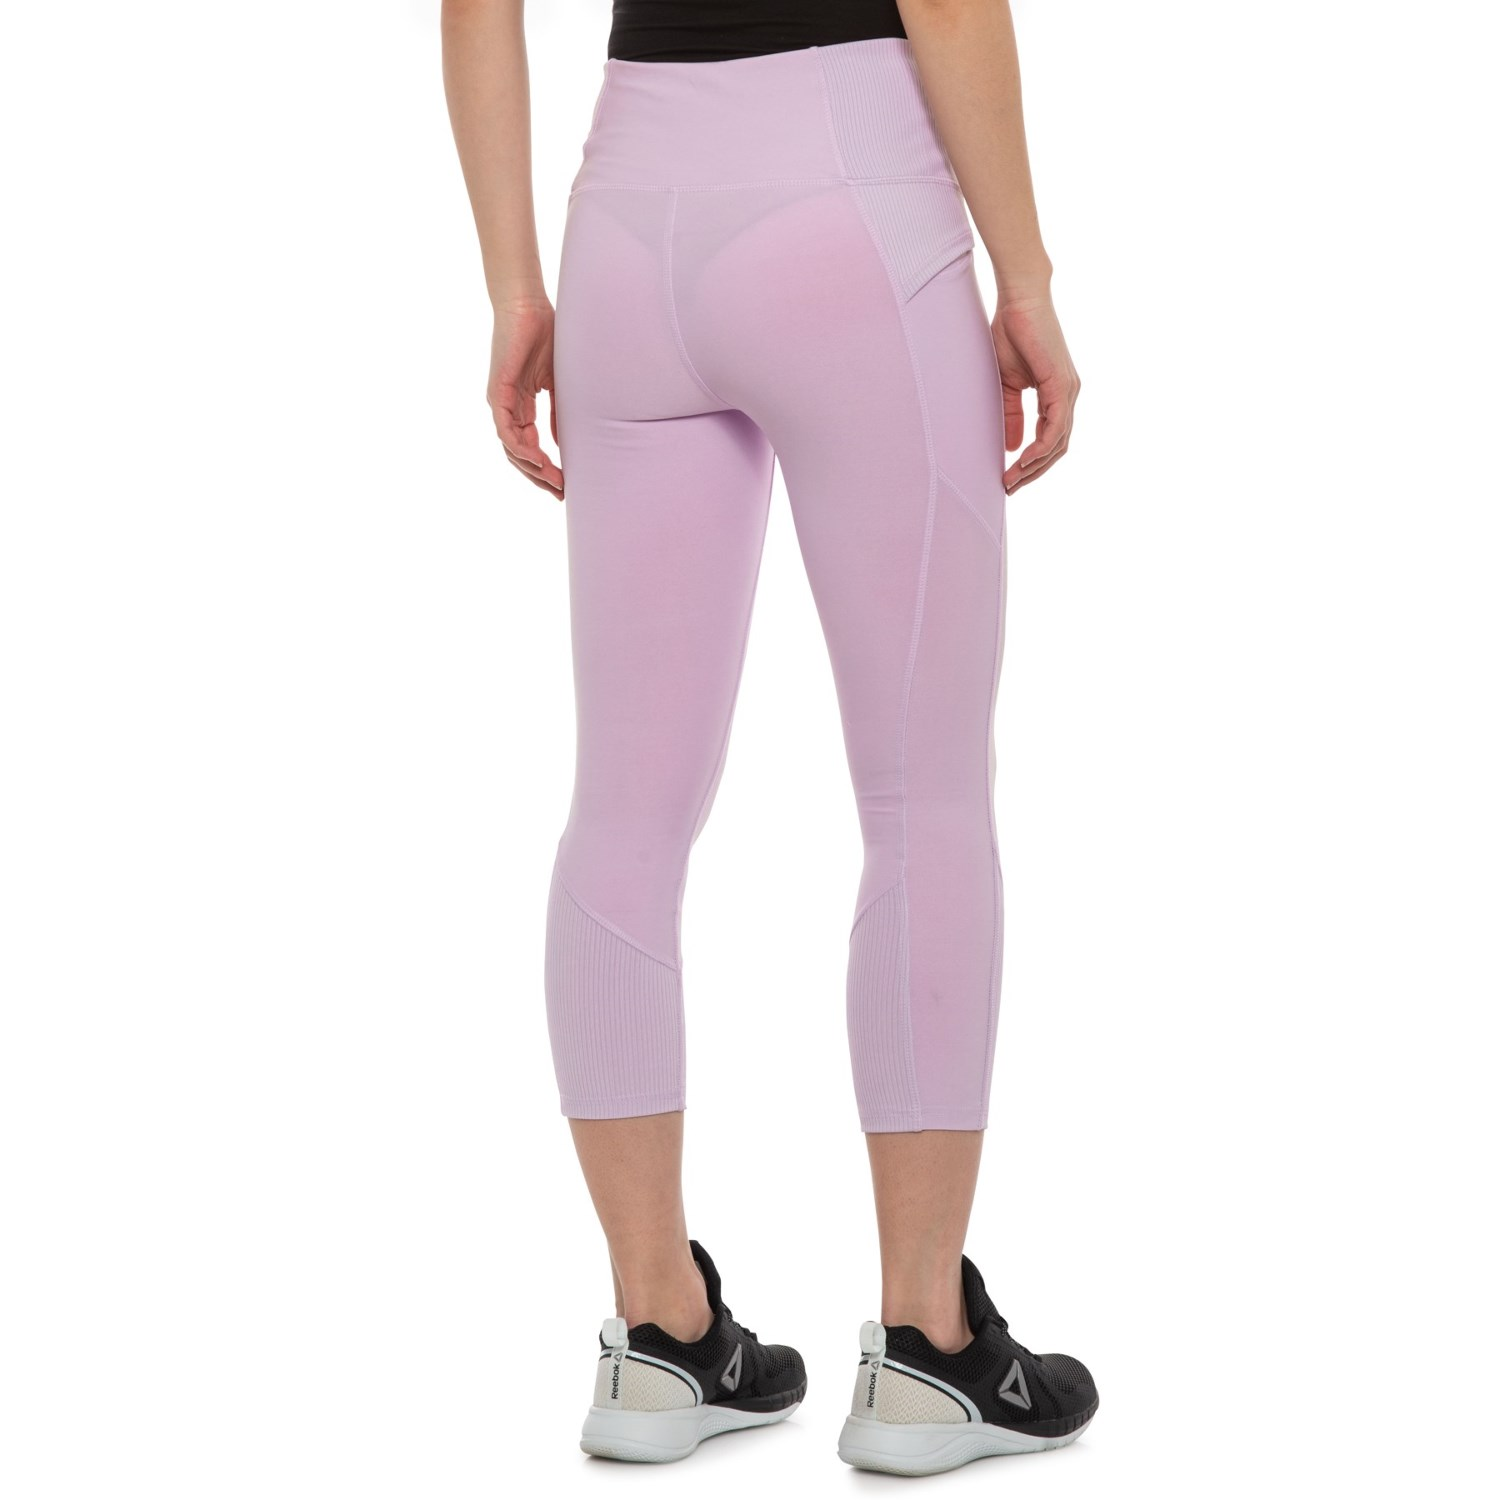 6a0d5c92cb9a2 RBX Ribbed Capris (For Women) - Save 50%